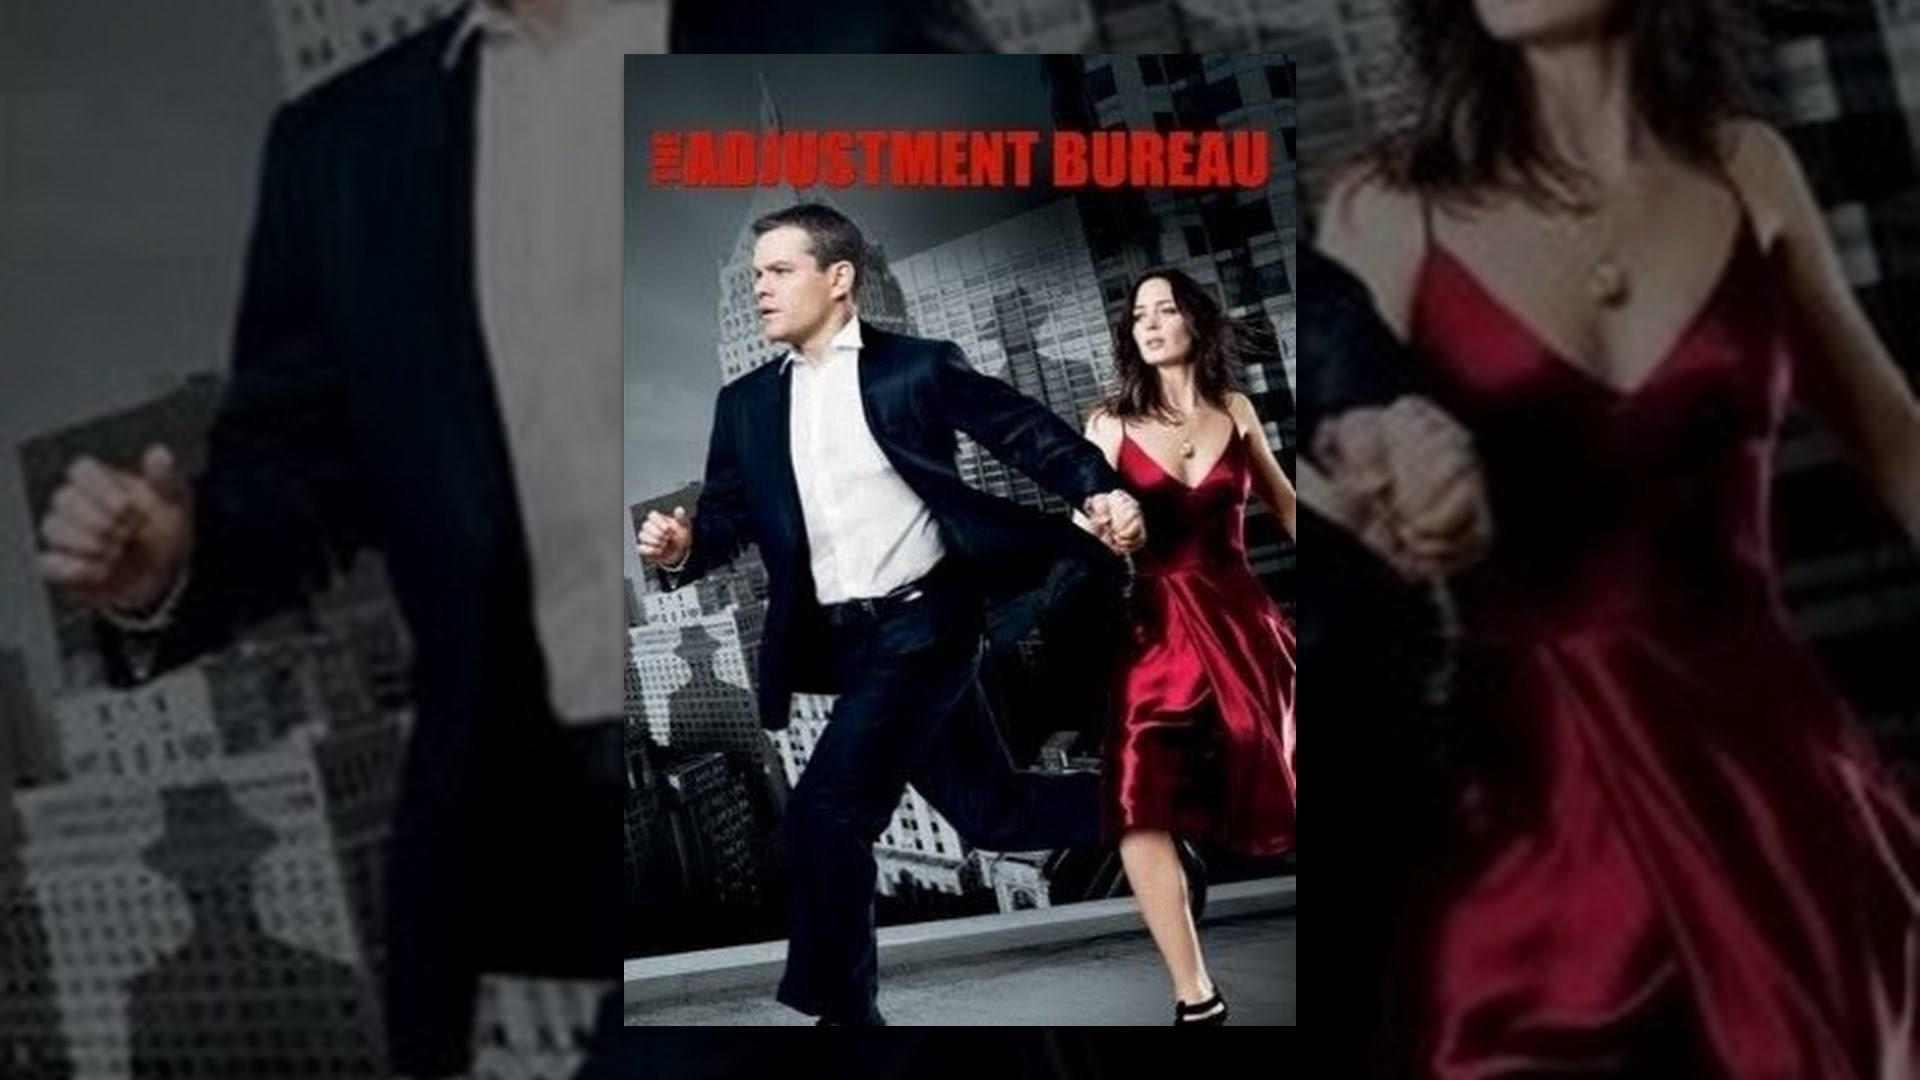 The adjustment bureau youtube for Bureau youtube